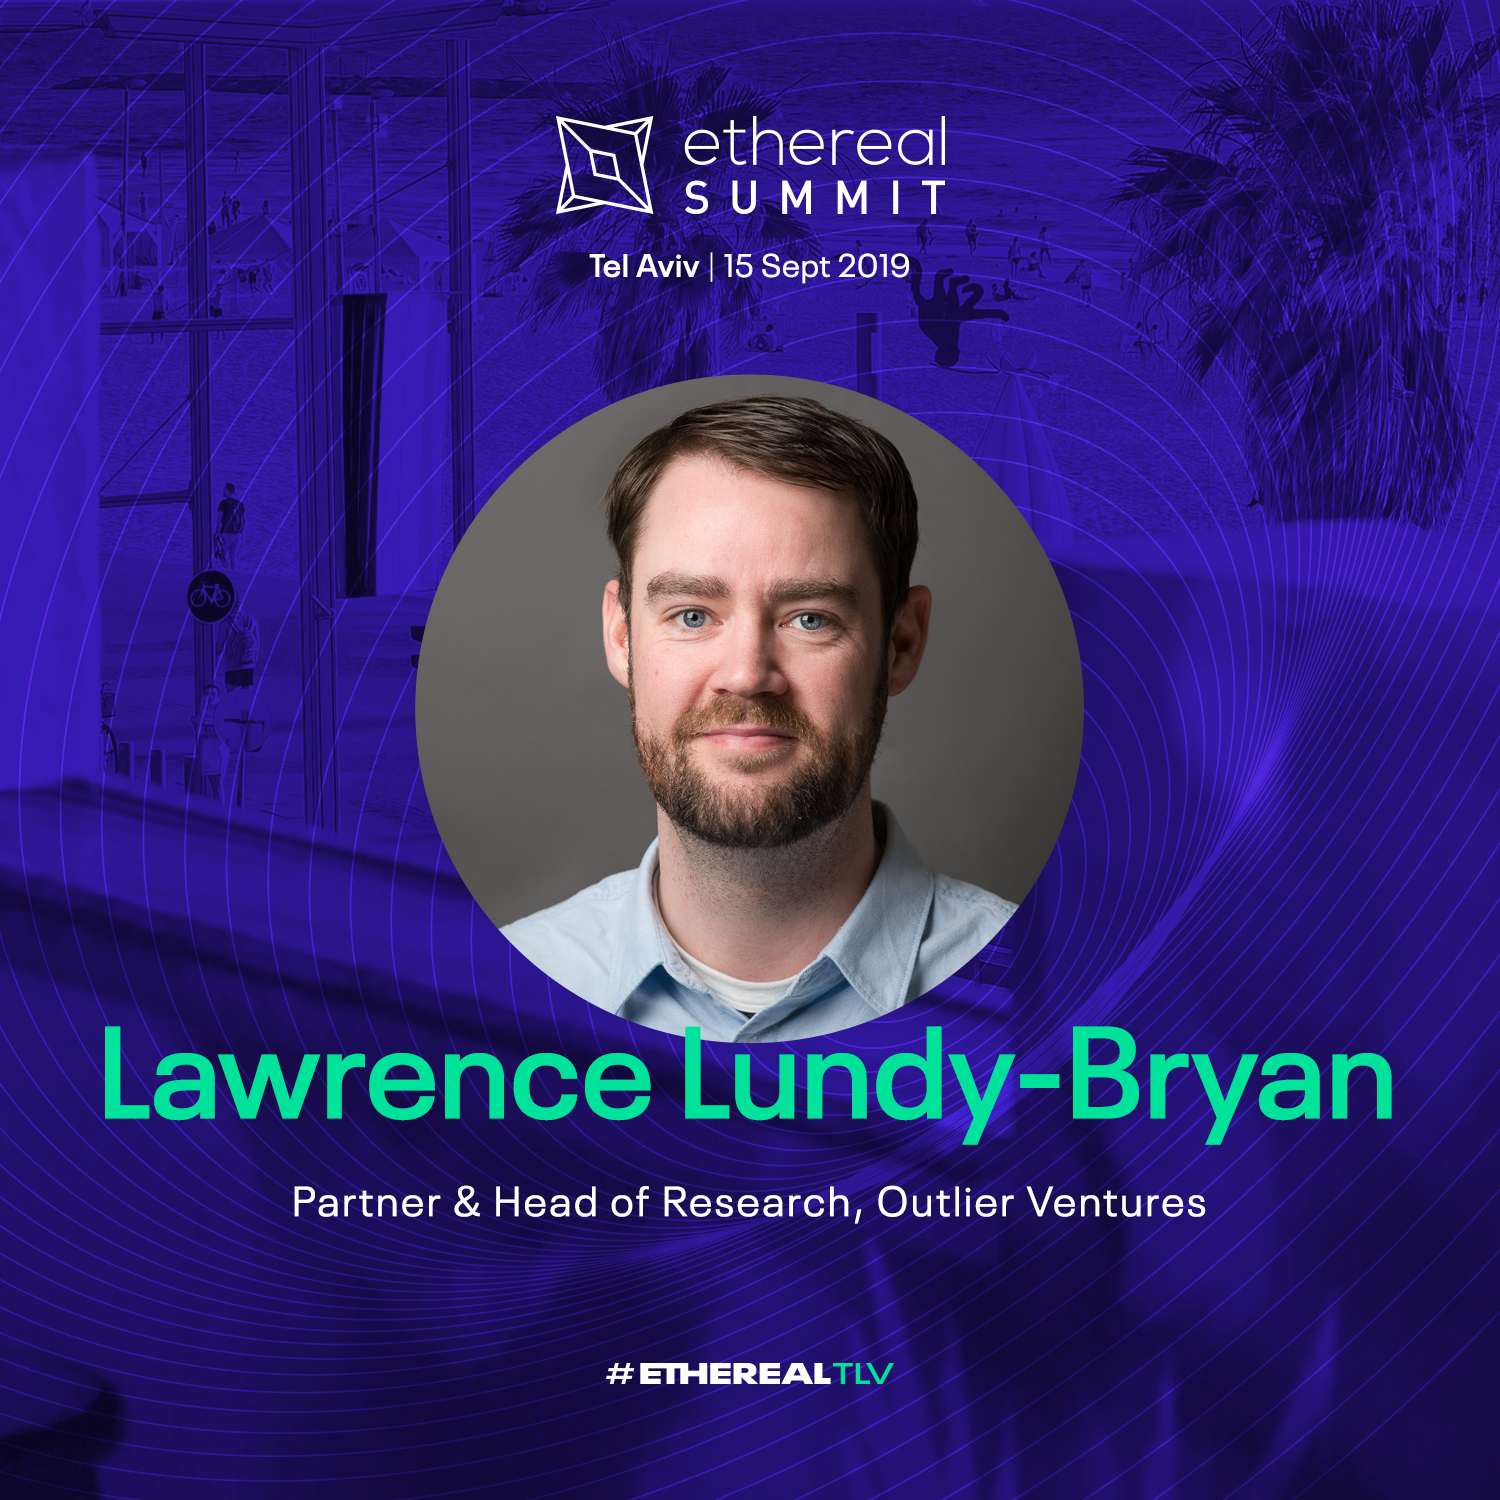 ethereal-tlv-2019-speaker-cards-square-lawrence-lundy-bryan.png